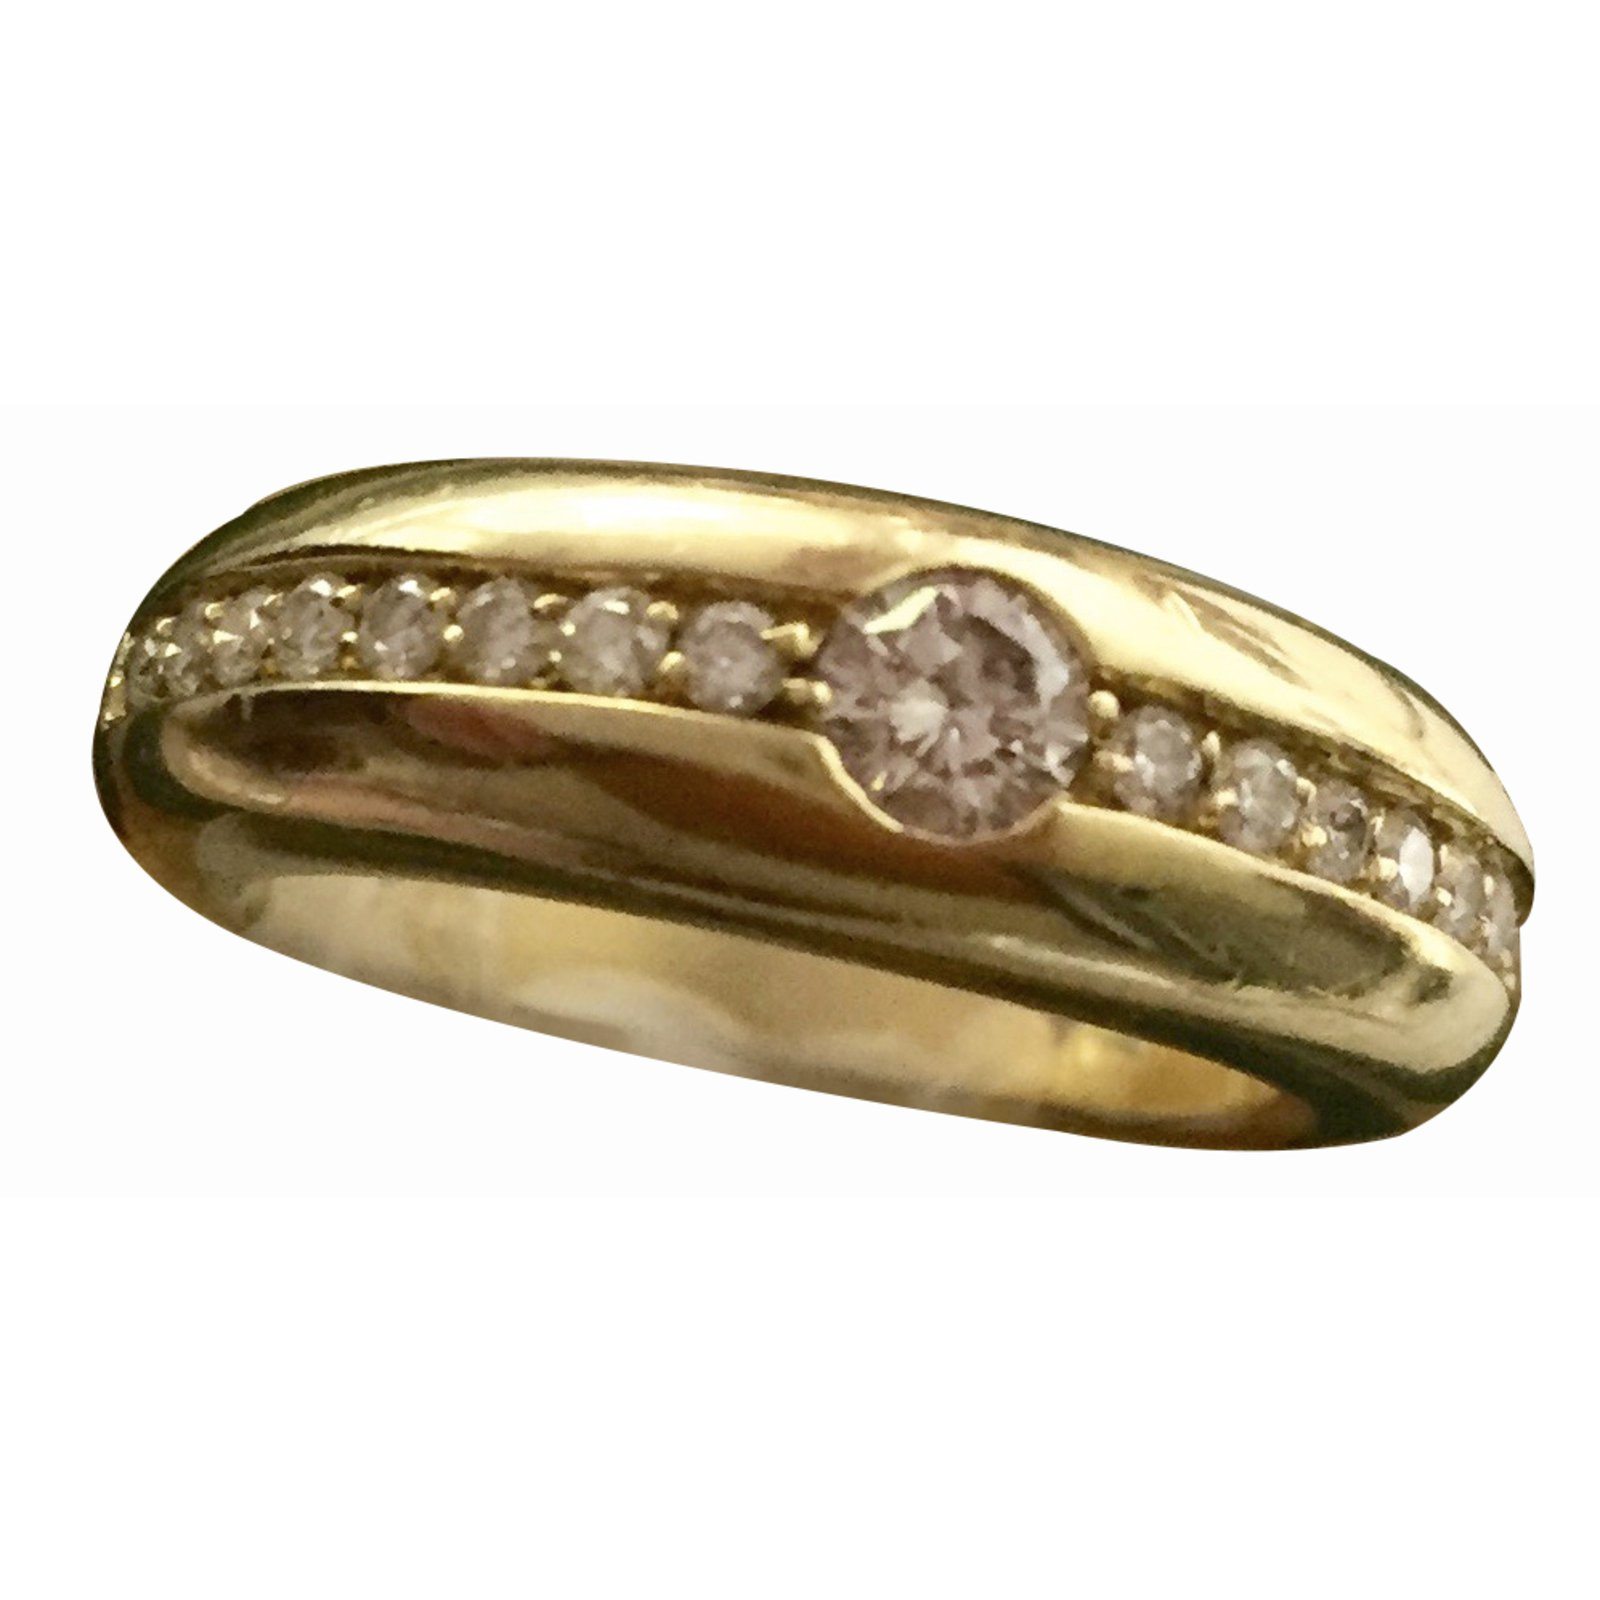 Autre Marque H Stern Ring Rings Yellow Gold Golden Ref 39350 Joli